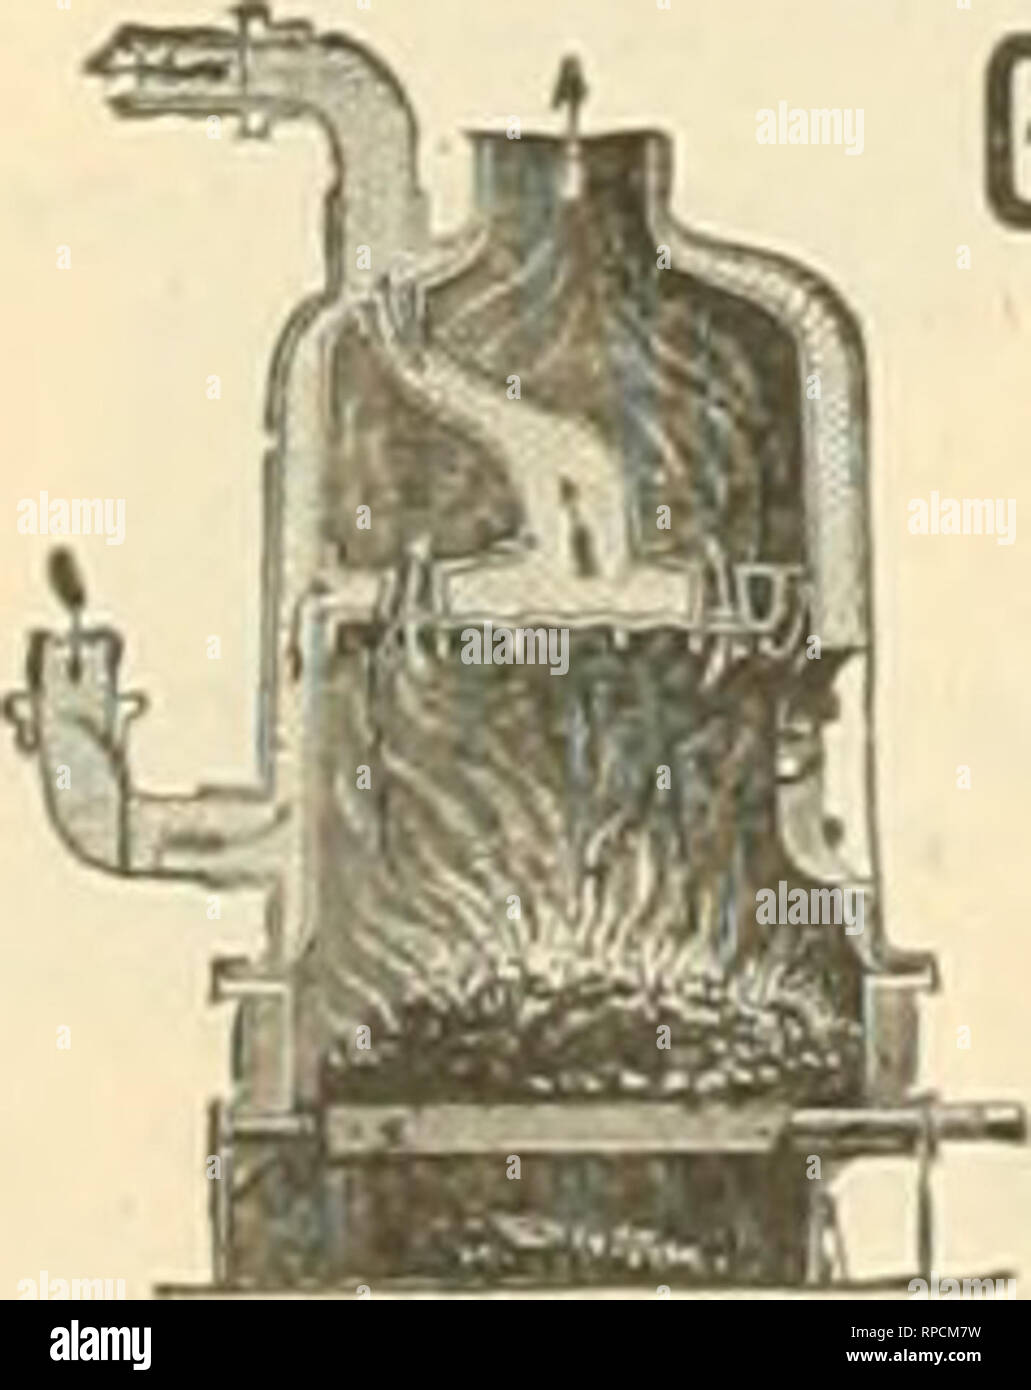 New York Heating Stock Photos & New York Heating Stock Images - Page